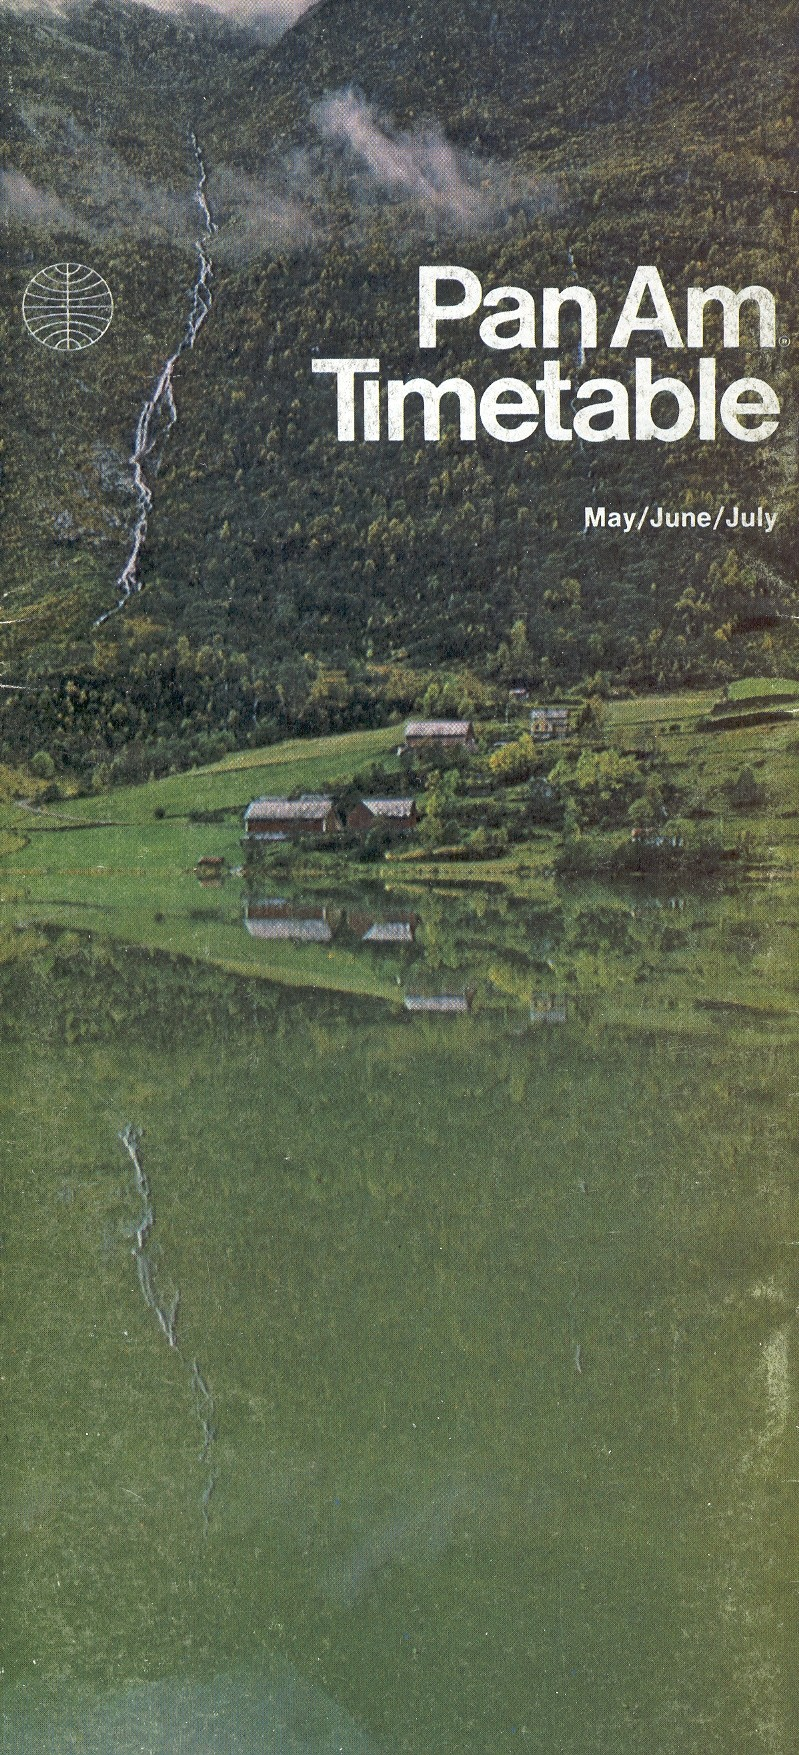 A Norwegian fjord was featured on the Apr30 - Jul 31 1972 Pan Am timetable in the Helvetica style.